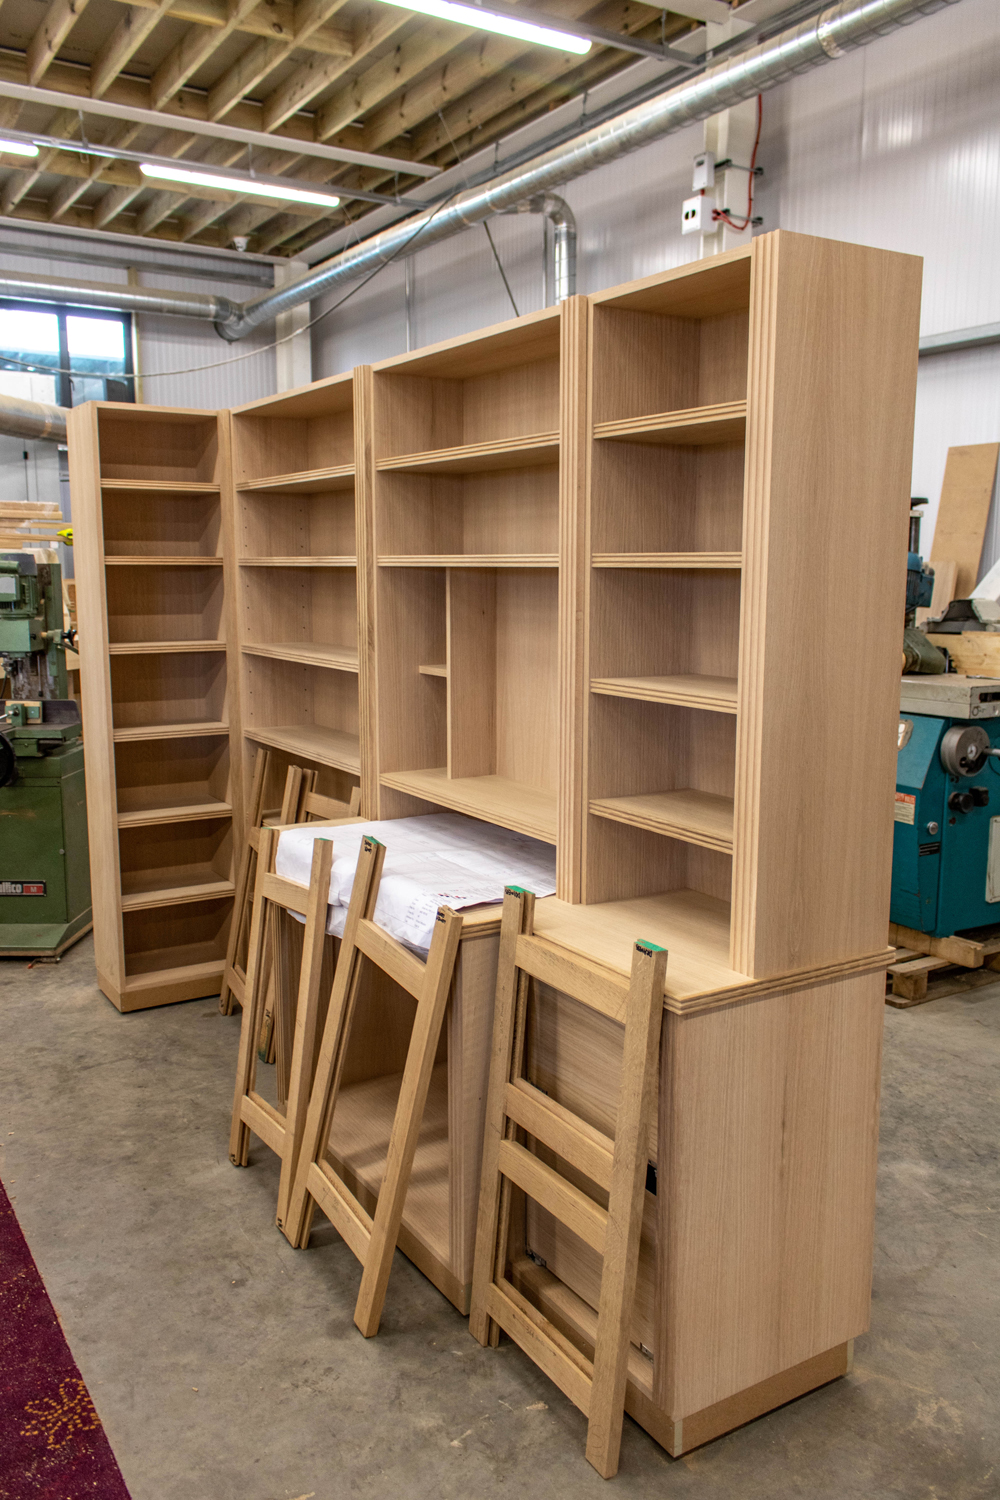 woode shelves and cabinetry in k&d joinery workshop